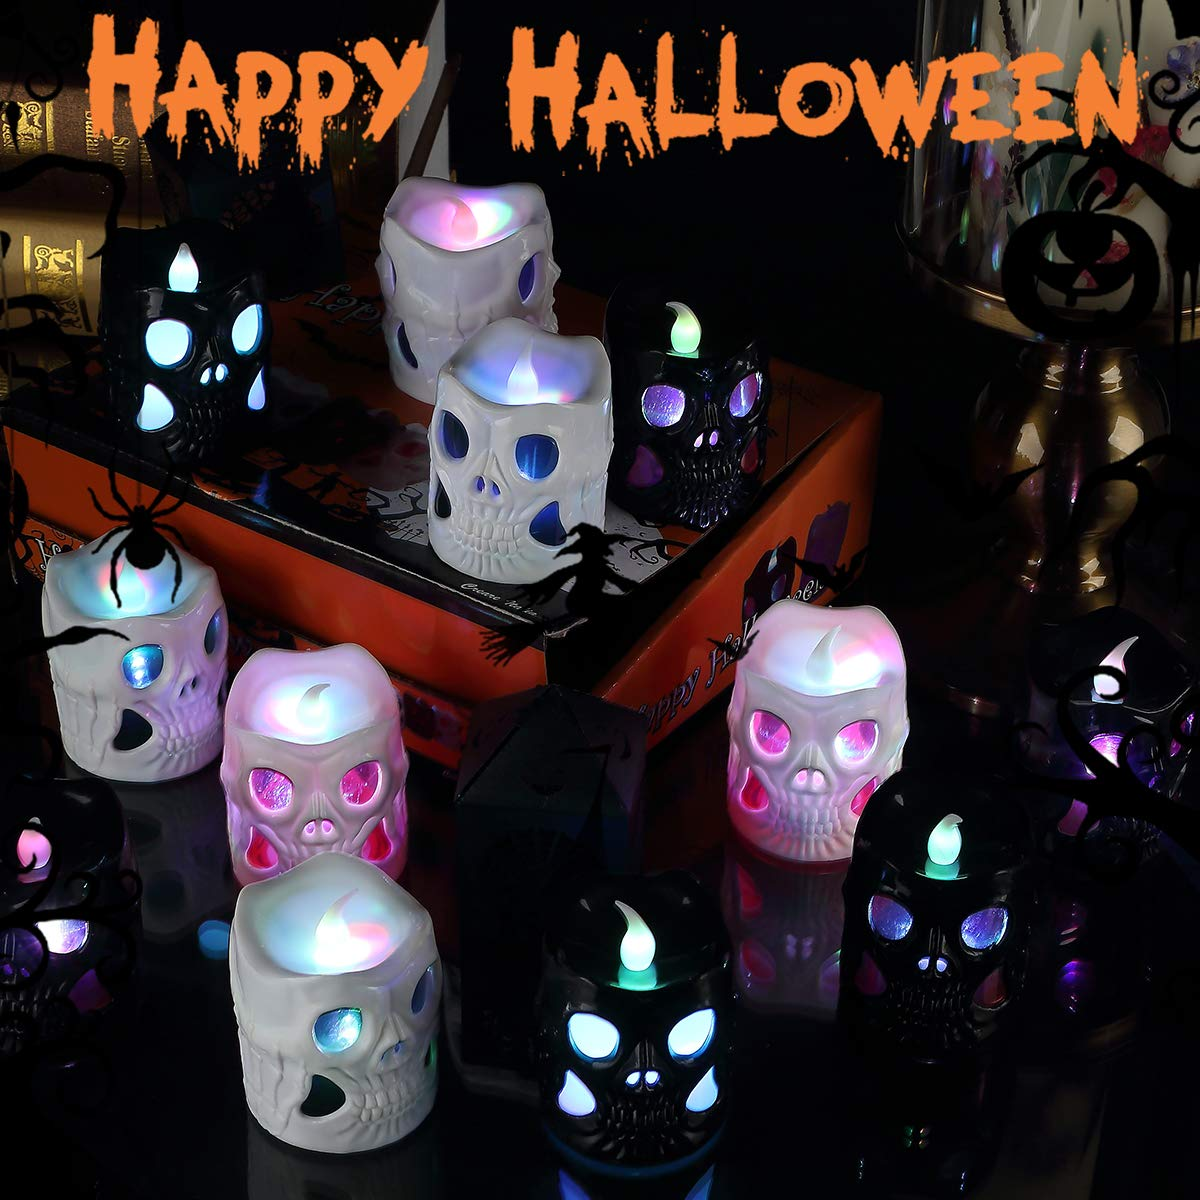 Halloween Lights LED Battery Operated 3D Halloween Lights, Halloween Skeleton Lights Decoration Indoor Outdoor Home Garden Holiday Party(12 Pack) catnee